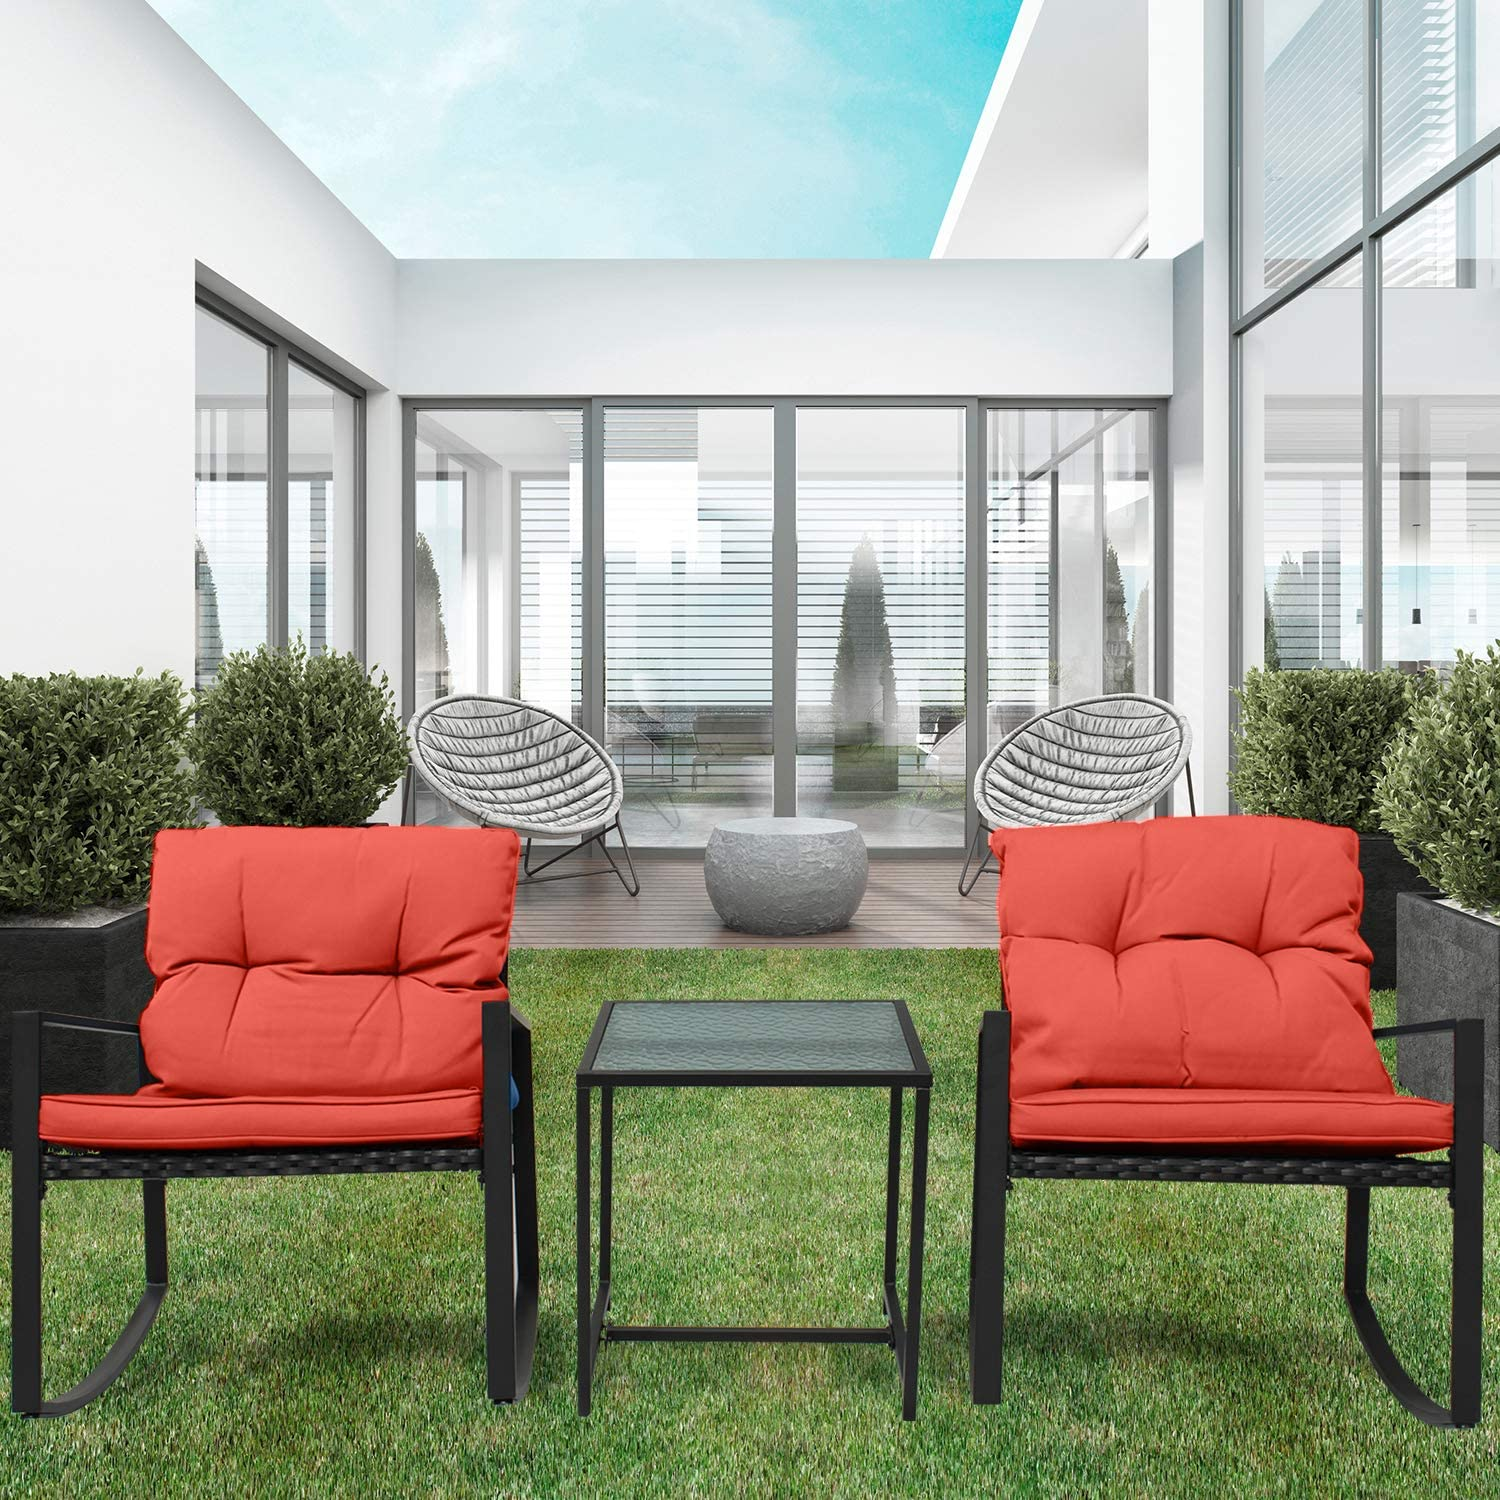 Patio /& Porch Durable /& Stylish Synthetic Wicker Outdoor Furniture Glass Coffee Table with 2 Chairs for Balcony Soft Beige Cushions Black Metal Pyramid Home Decor 3-Piece Rocking Bistro Set